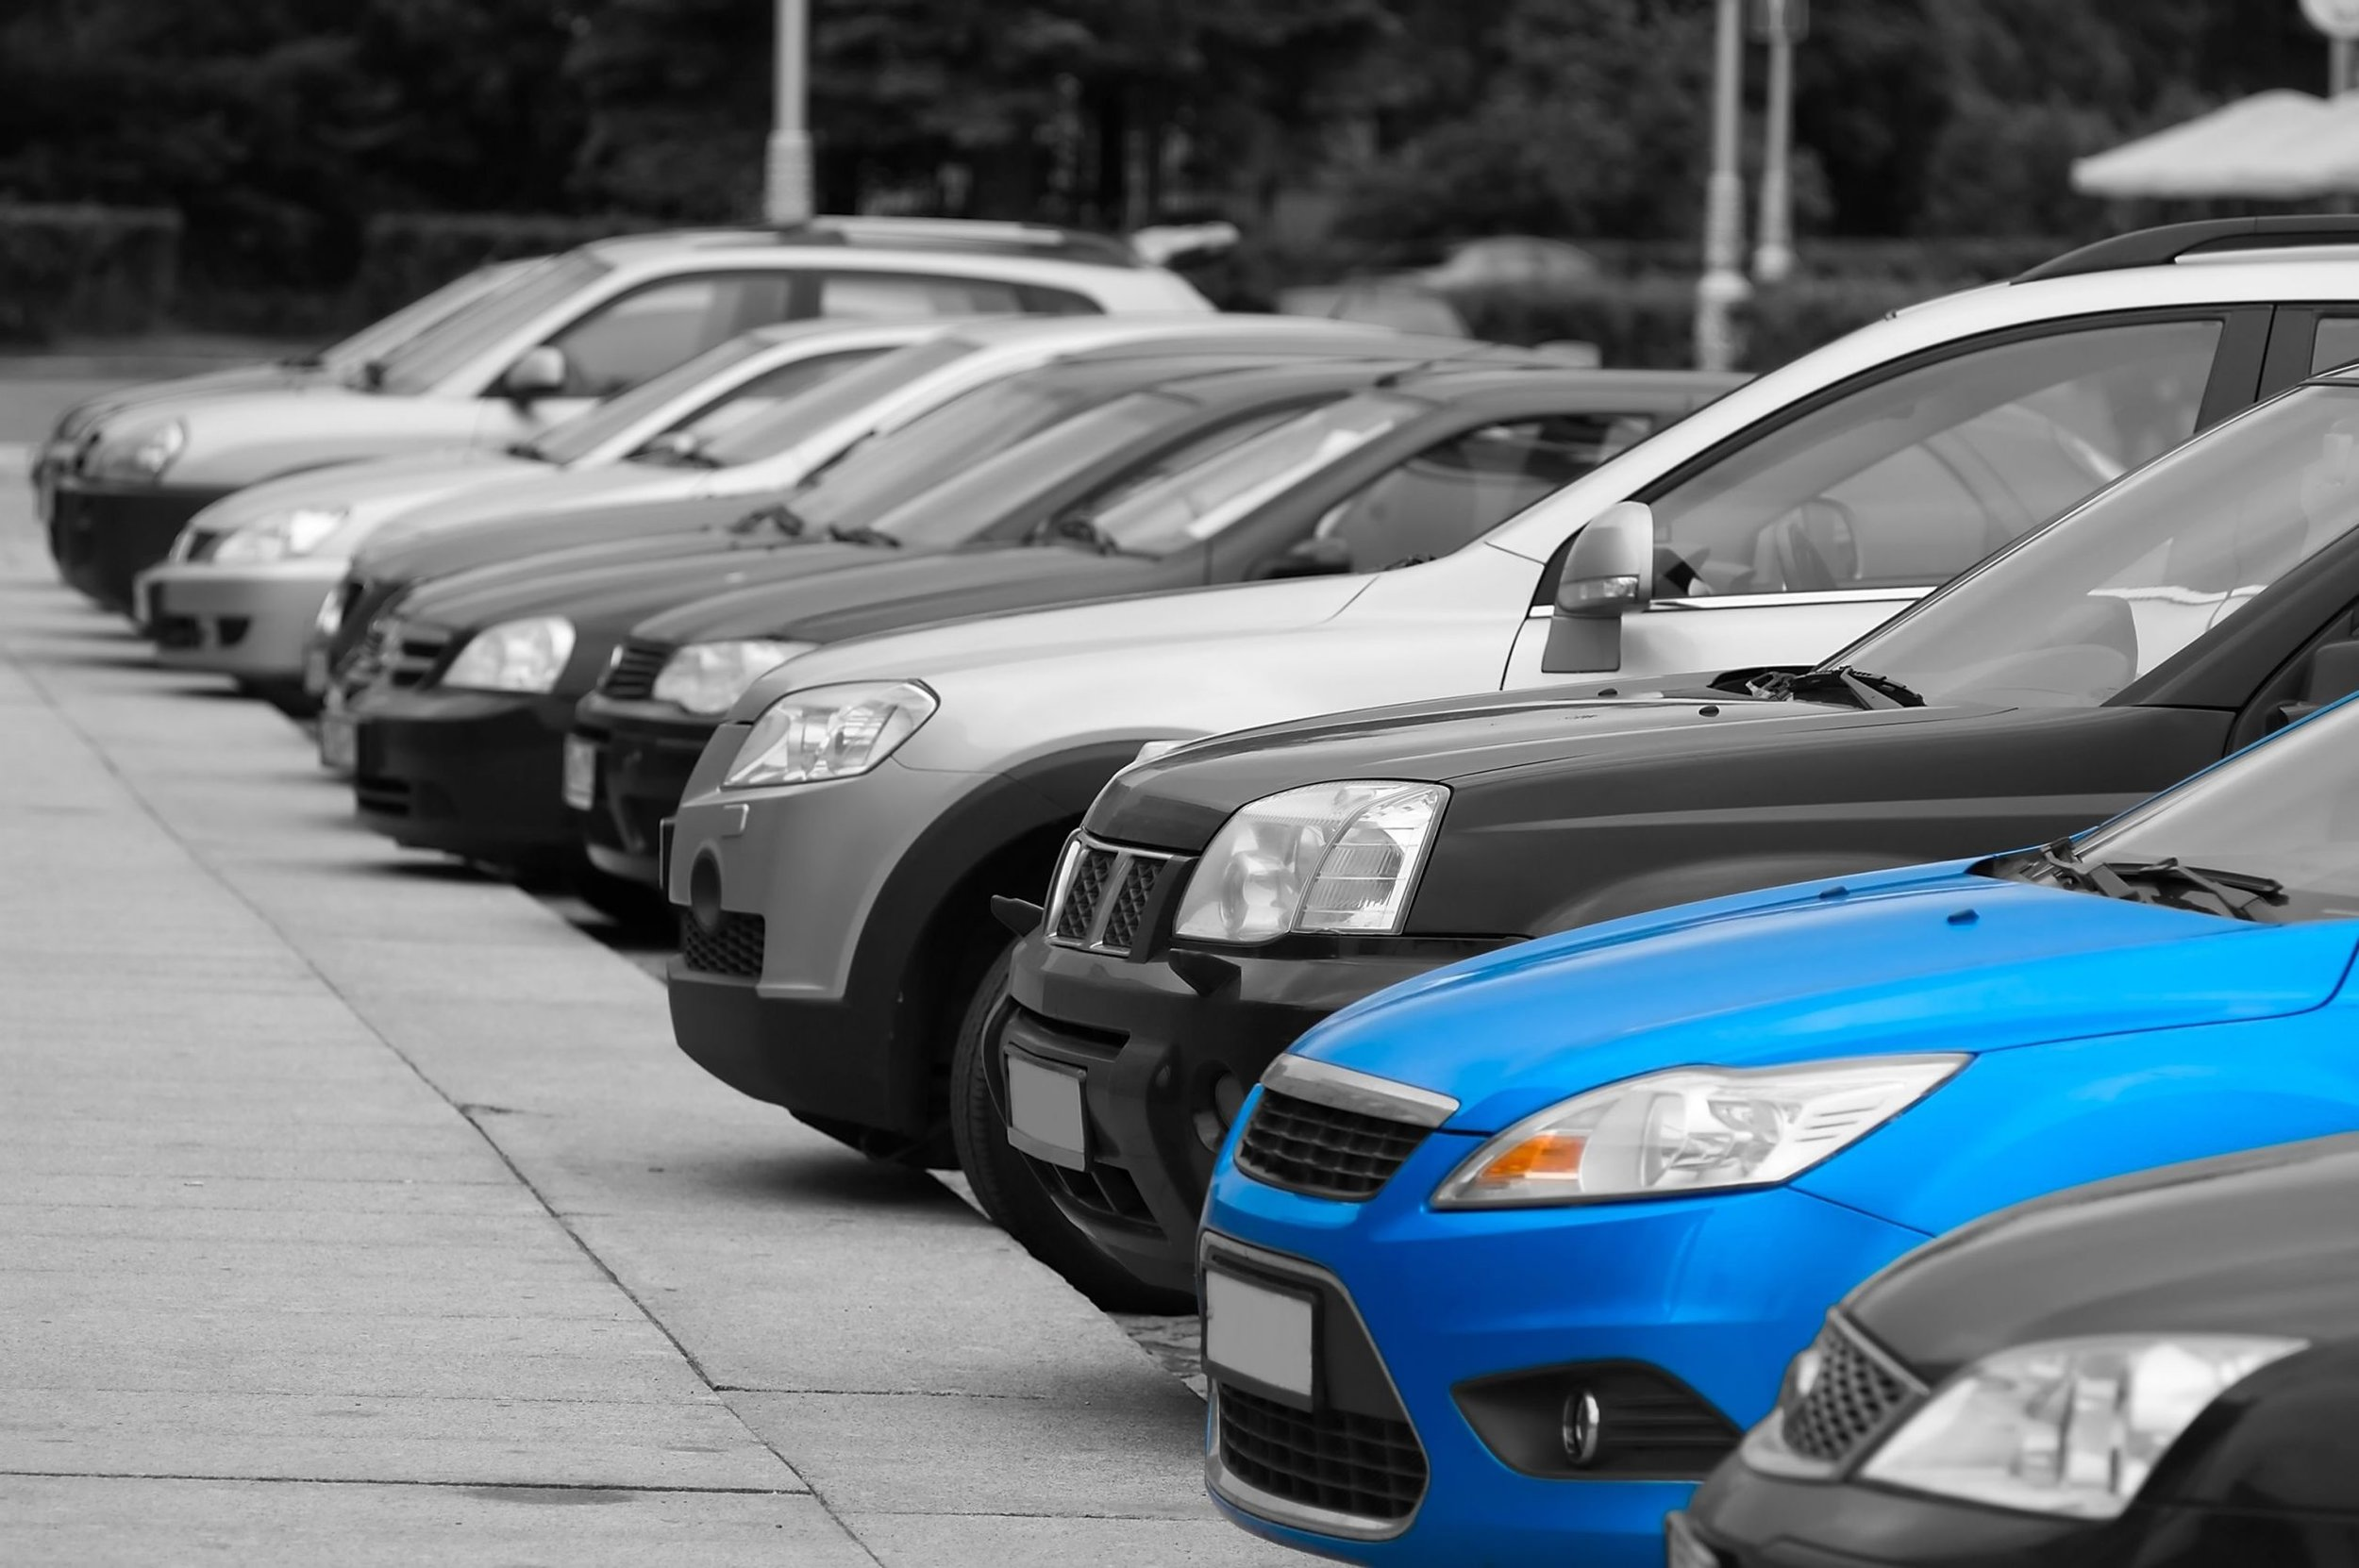 Fleet Management - Netresult can help you make good valuation decisions and reduce maintenance and defleeting costs.